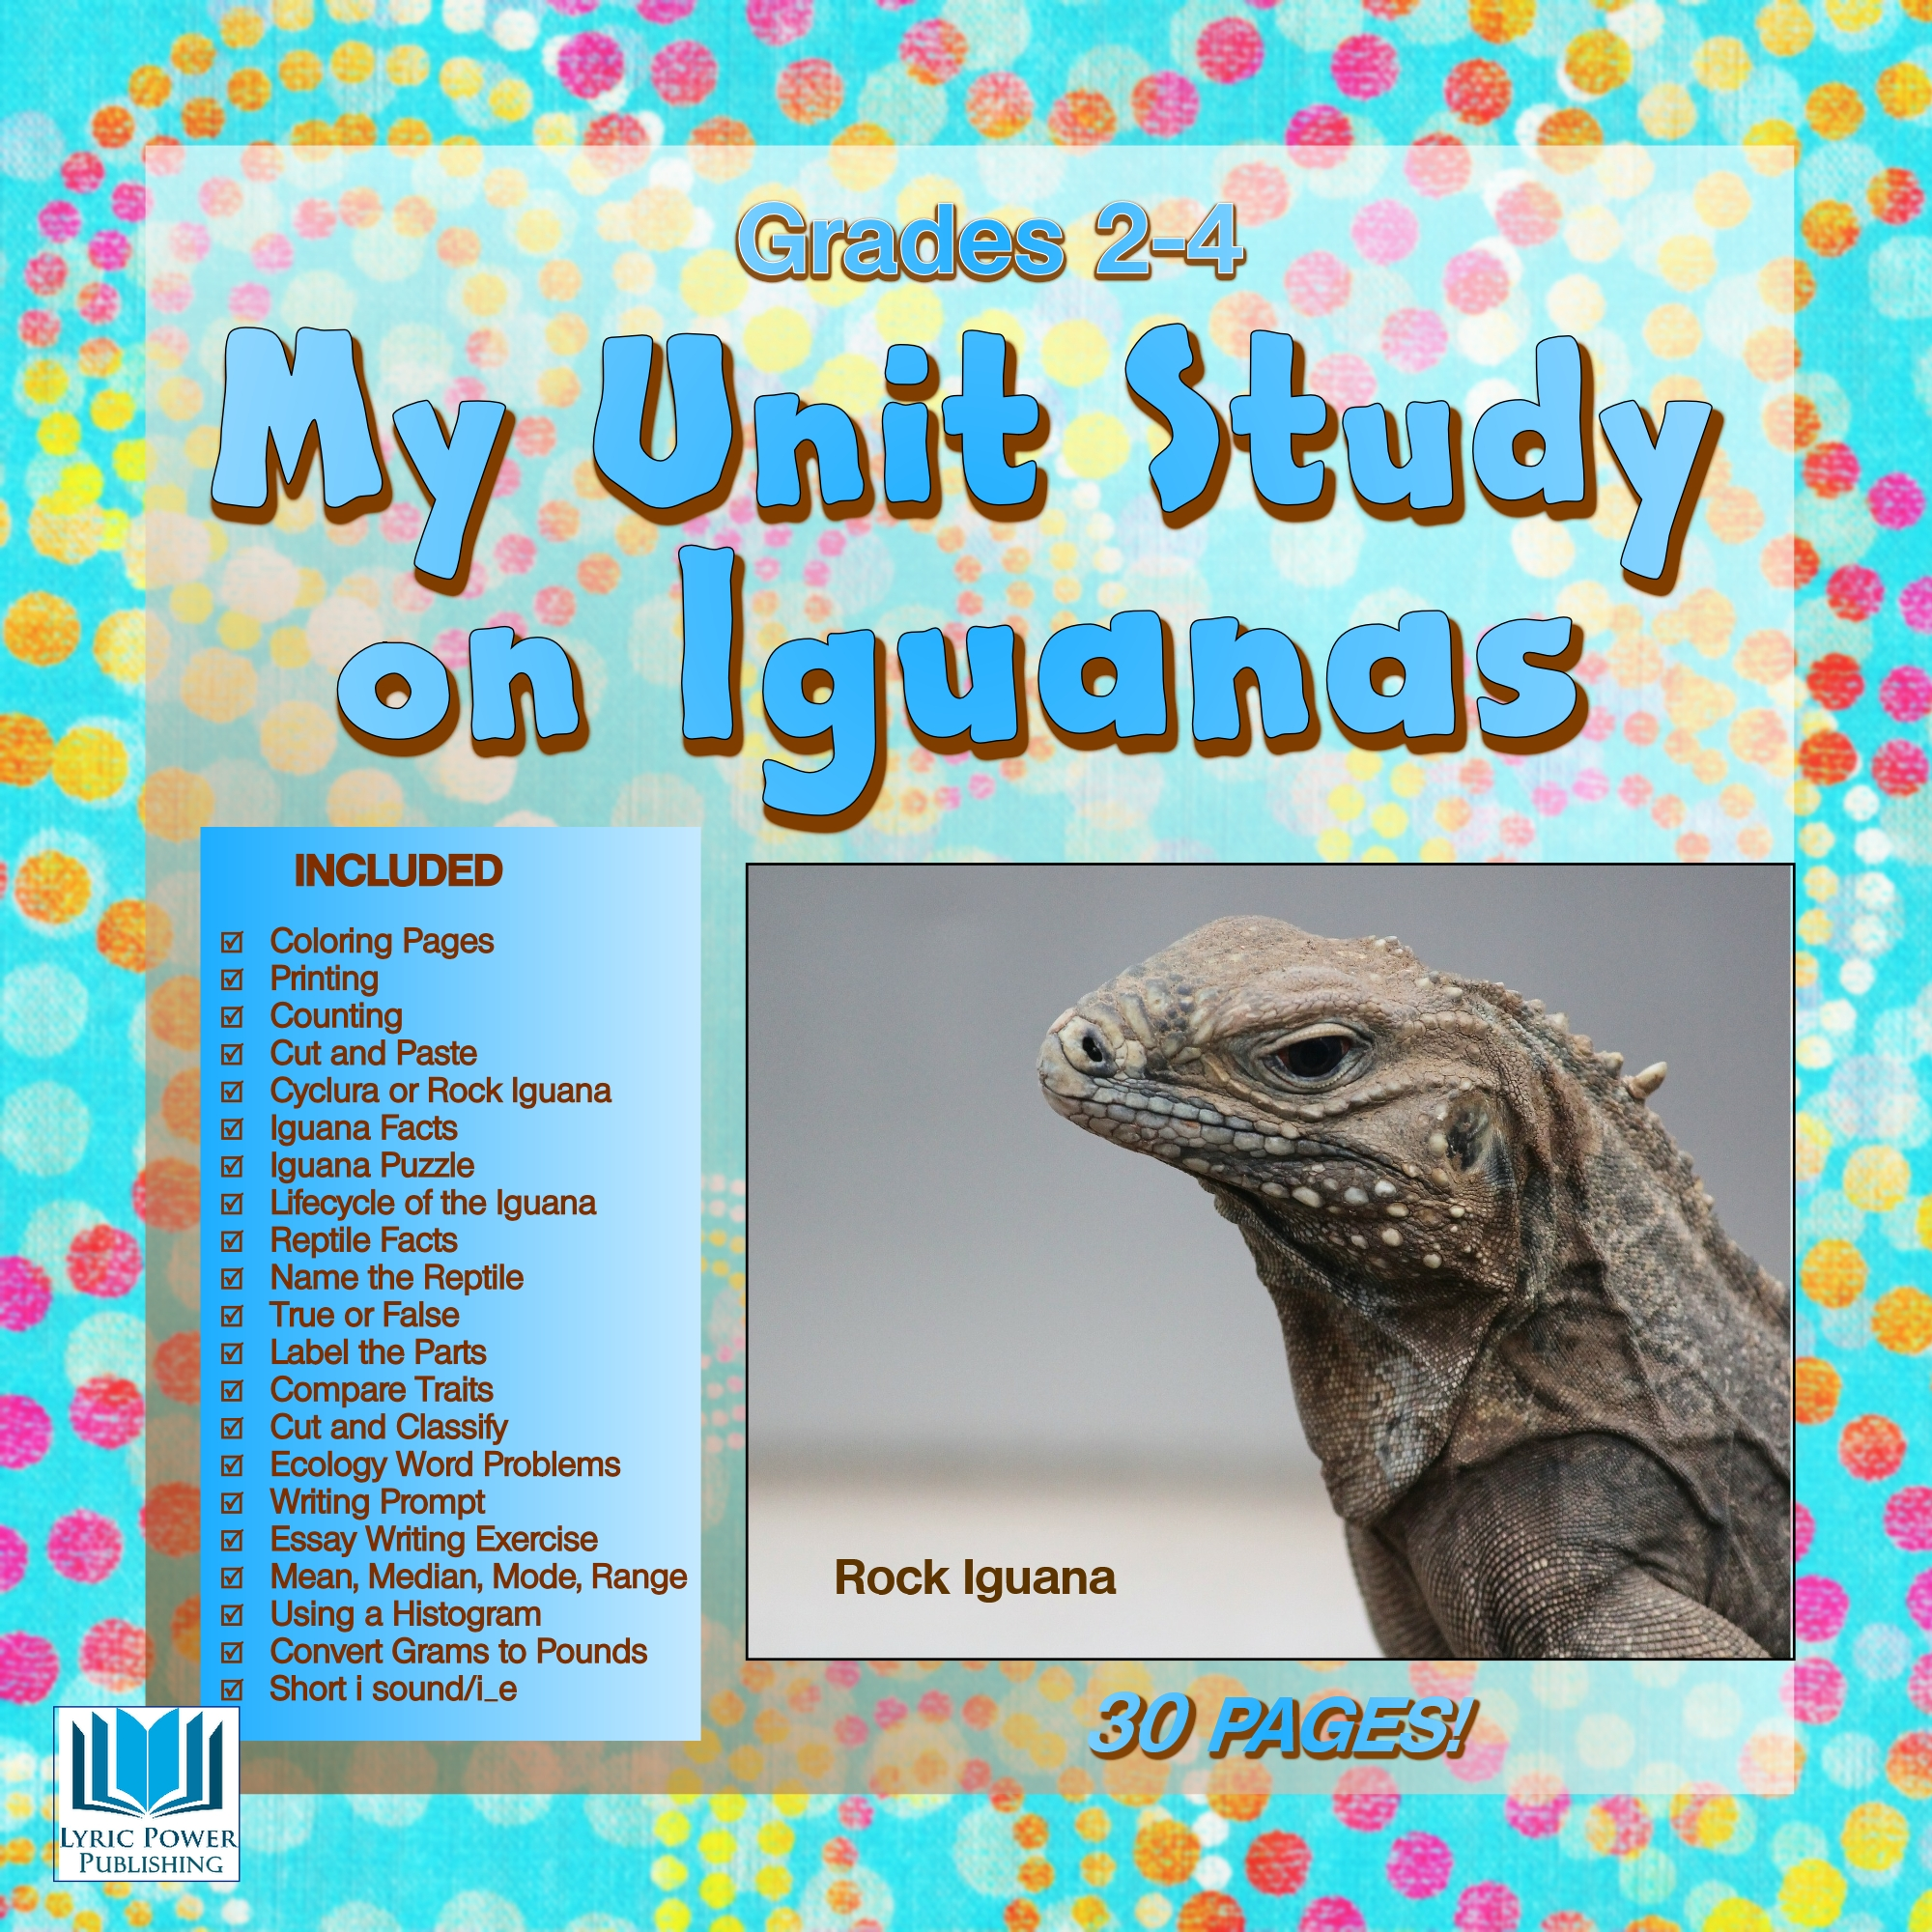 a white and light blue book cover with an image of an iguana's head